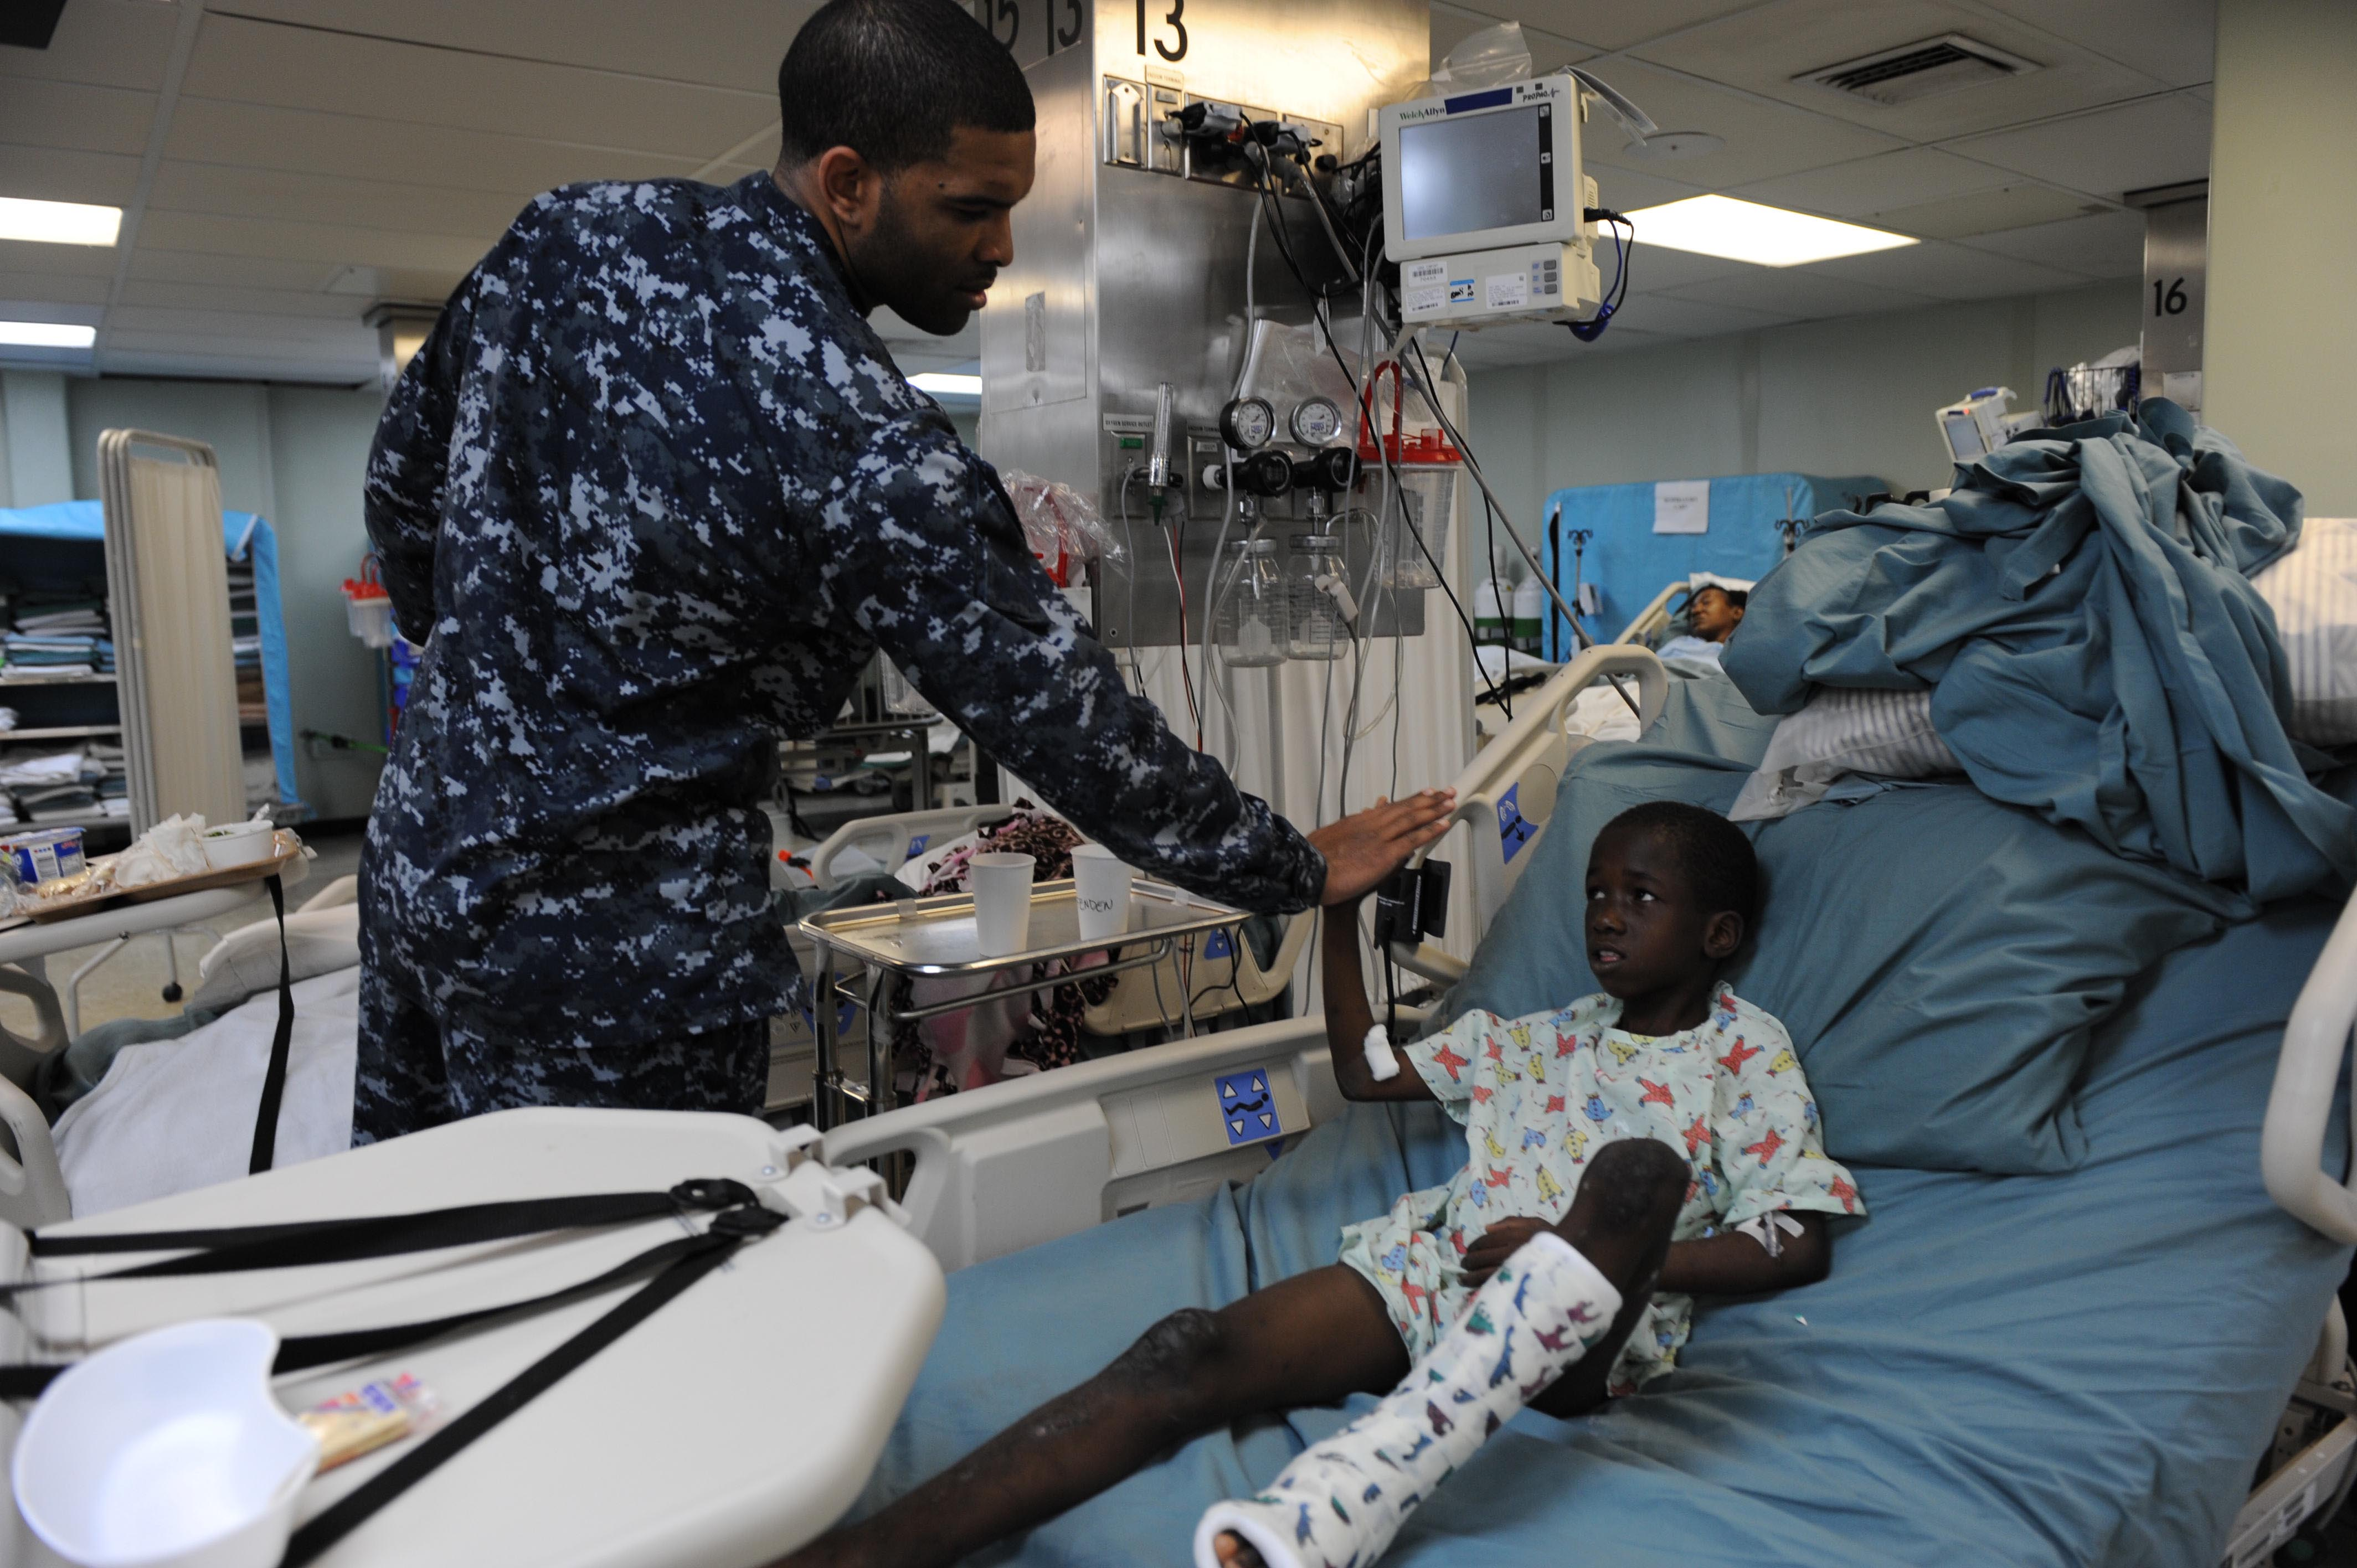 File:US Navy 110417-F-NJ219-320 Hospital Corpsman 3rd Class ...